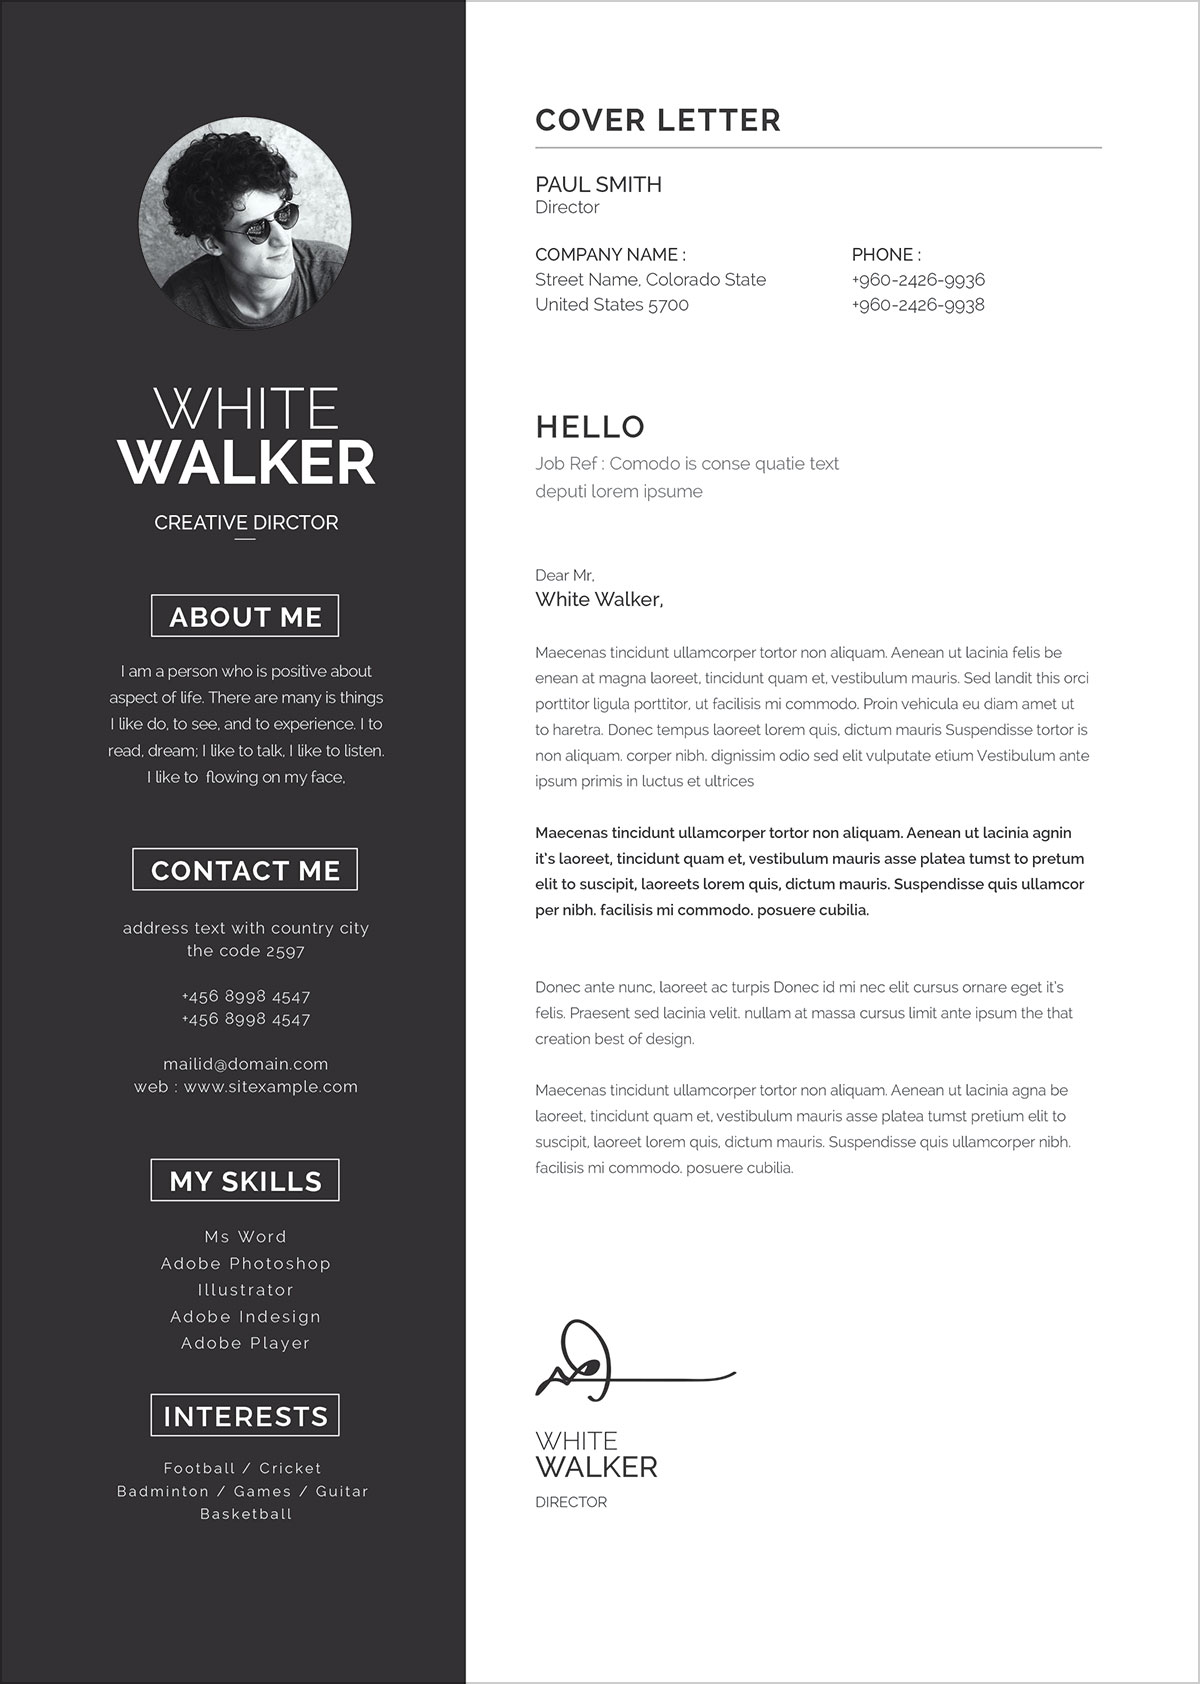 Free-Clean-Resume-Template-&-Cover-Letter-in-Word-PSD-PPTX-&-EPS- (4)